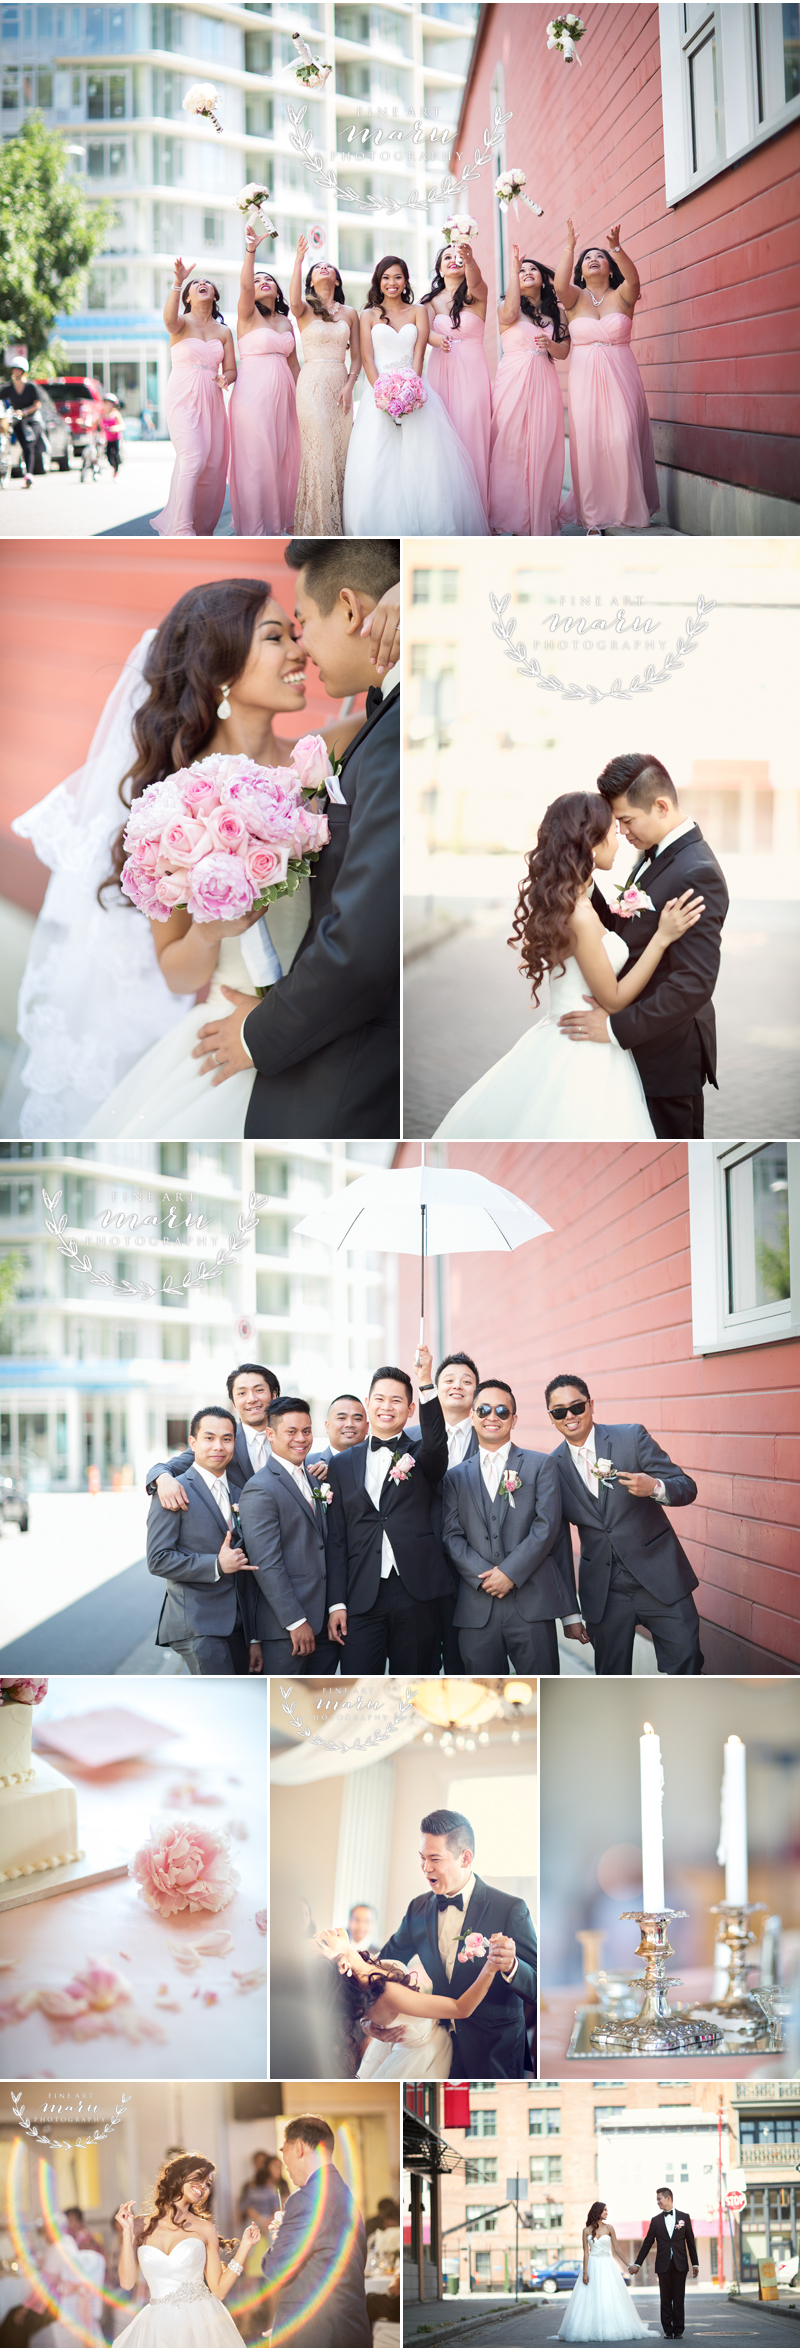 fine art wedding photography | vancouver photographer | maruphoto.ca